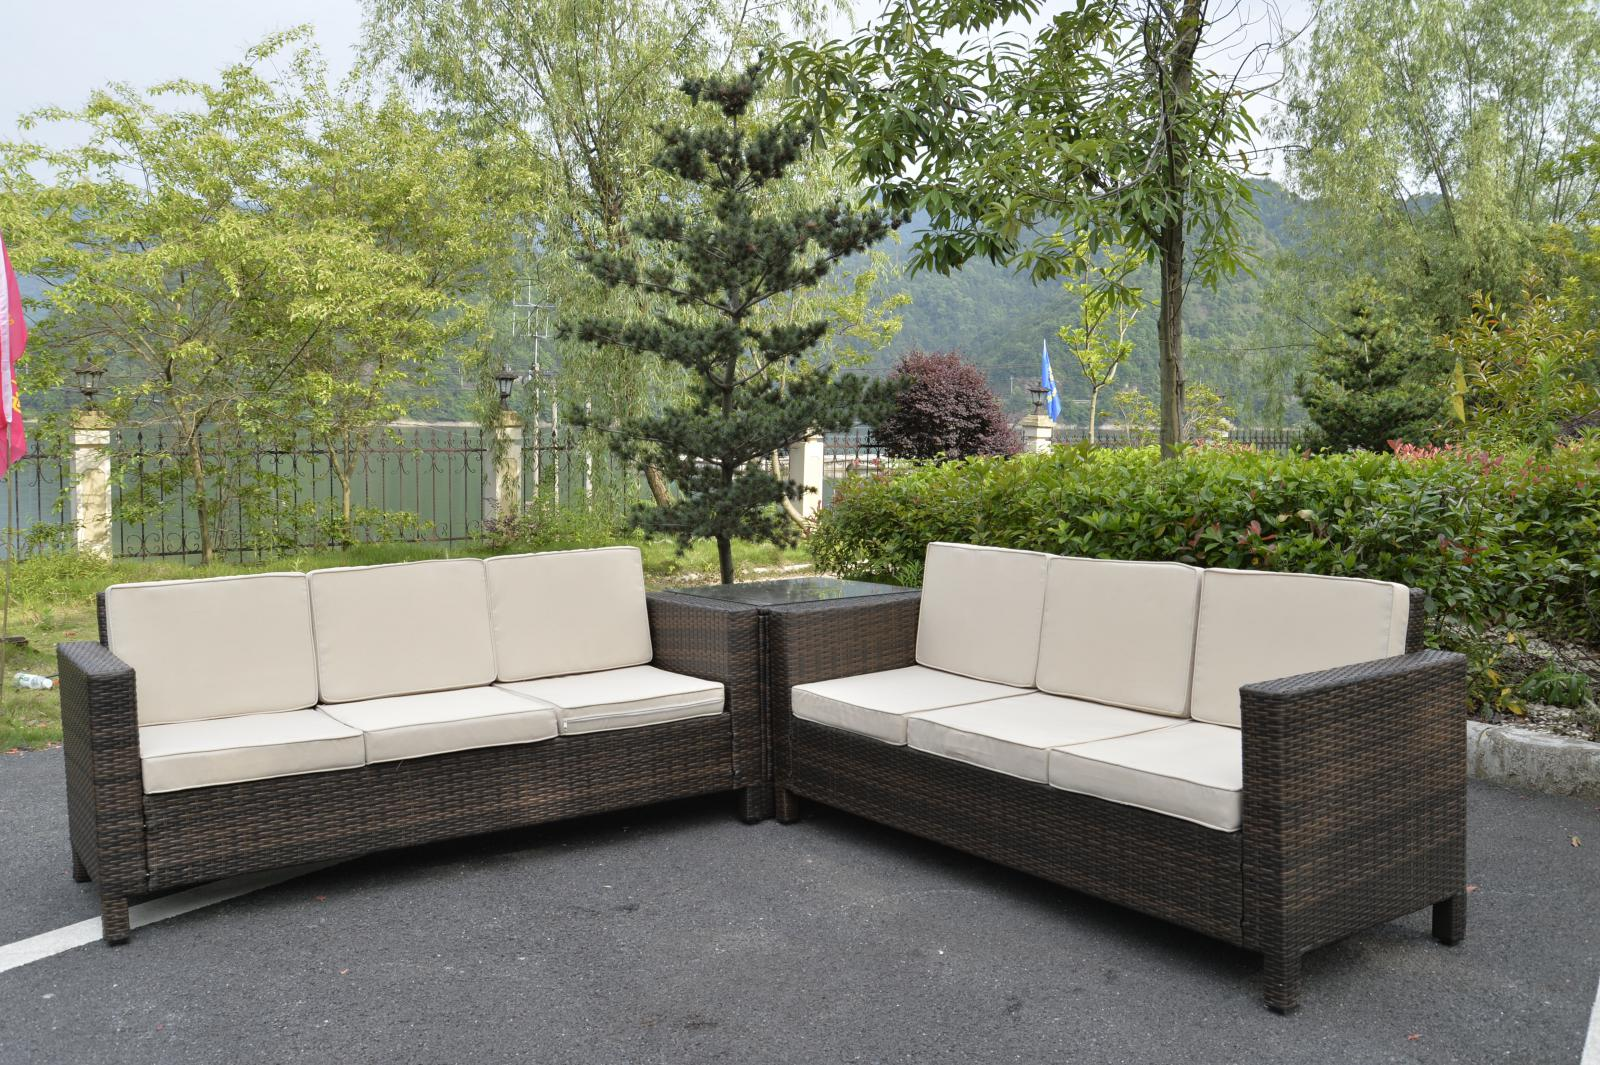 rattan garden furniture set sofa conservatory outdoor. Black Bedroom Furniture Sets. Home Design Ideas